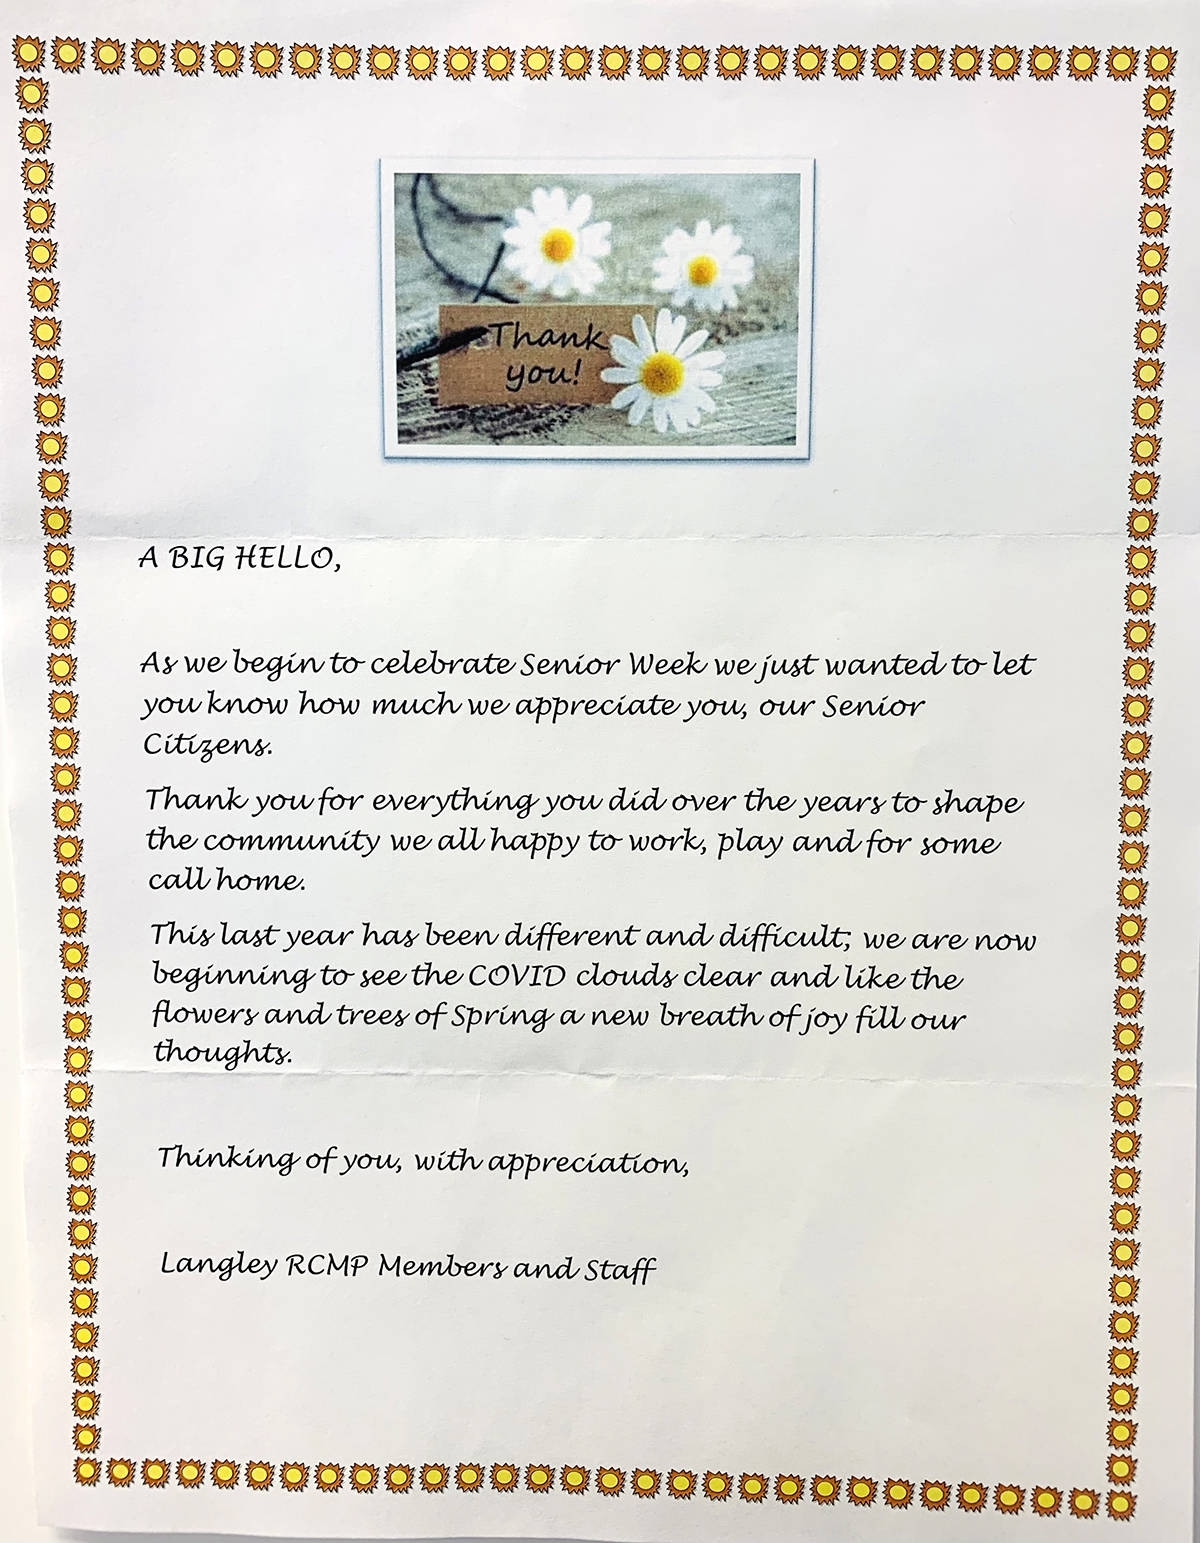 Langley RCMP sent a note to residents of Chartwell Langley Gardens for Seniors Week. (Chartwell/Special to the Langley Advance Times)